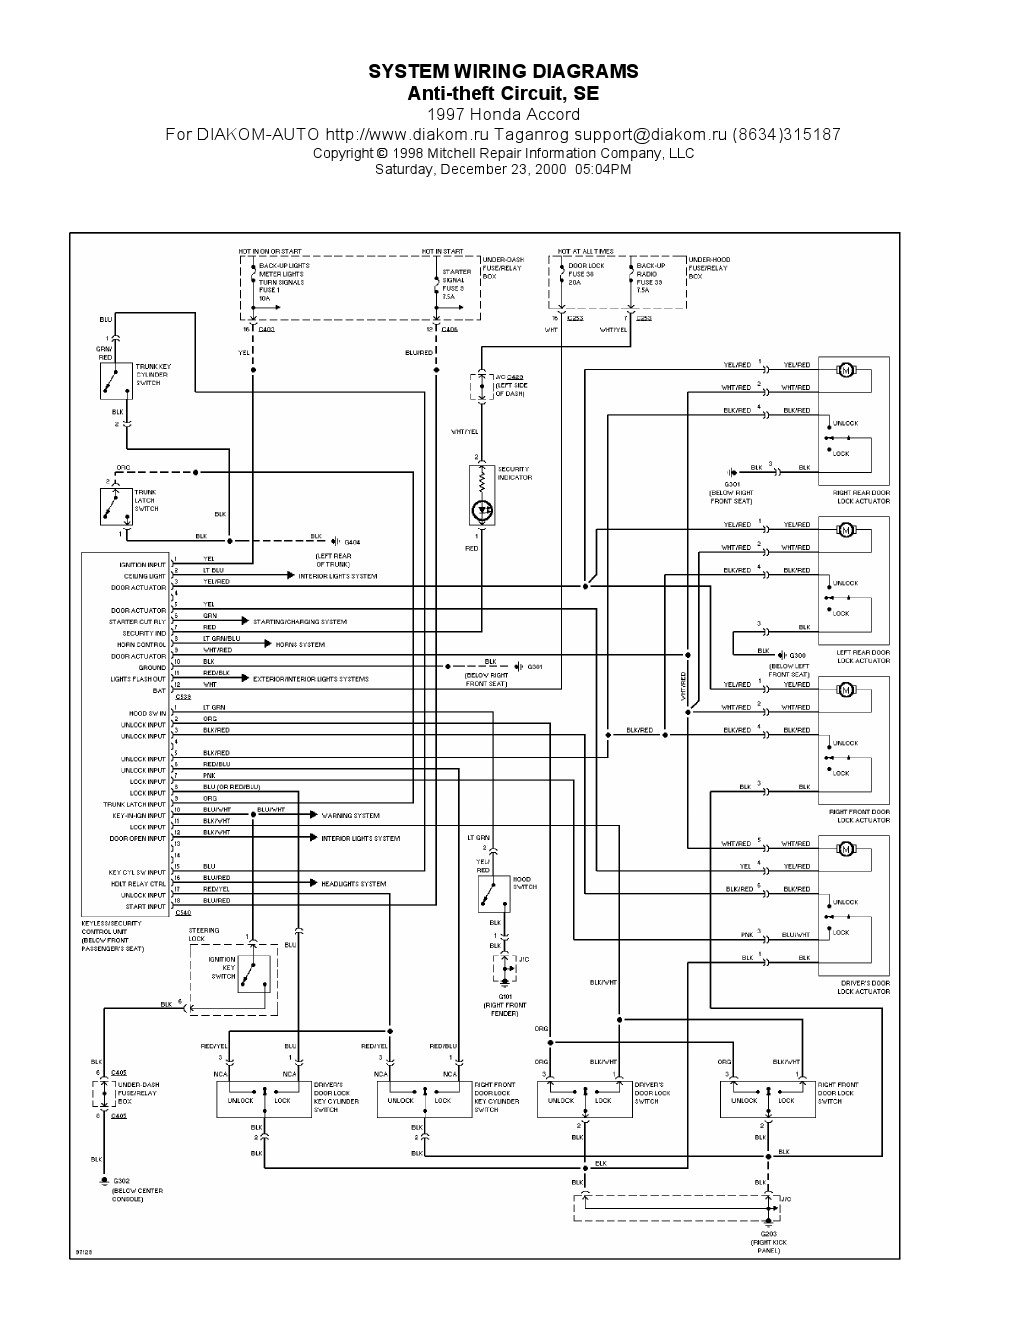 1997 Honda Accord Wiring Diagram Pdf Free Wiring Diagram